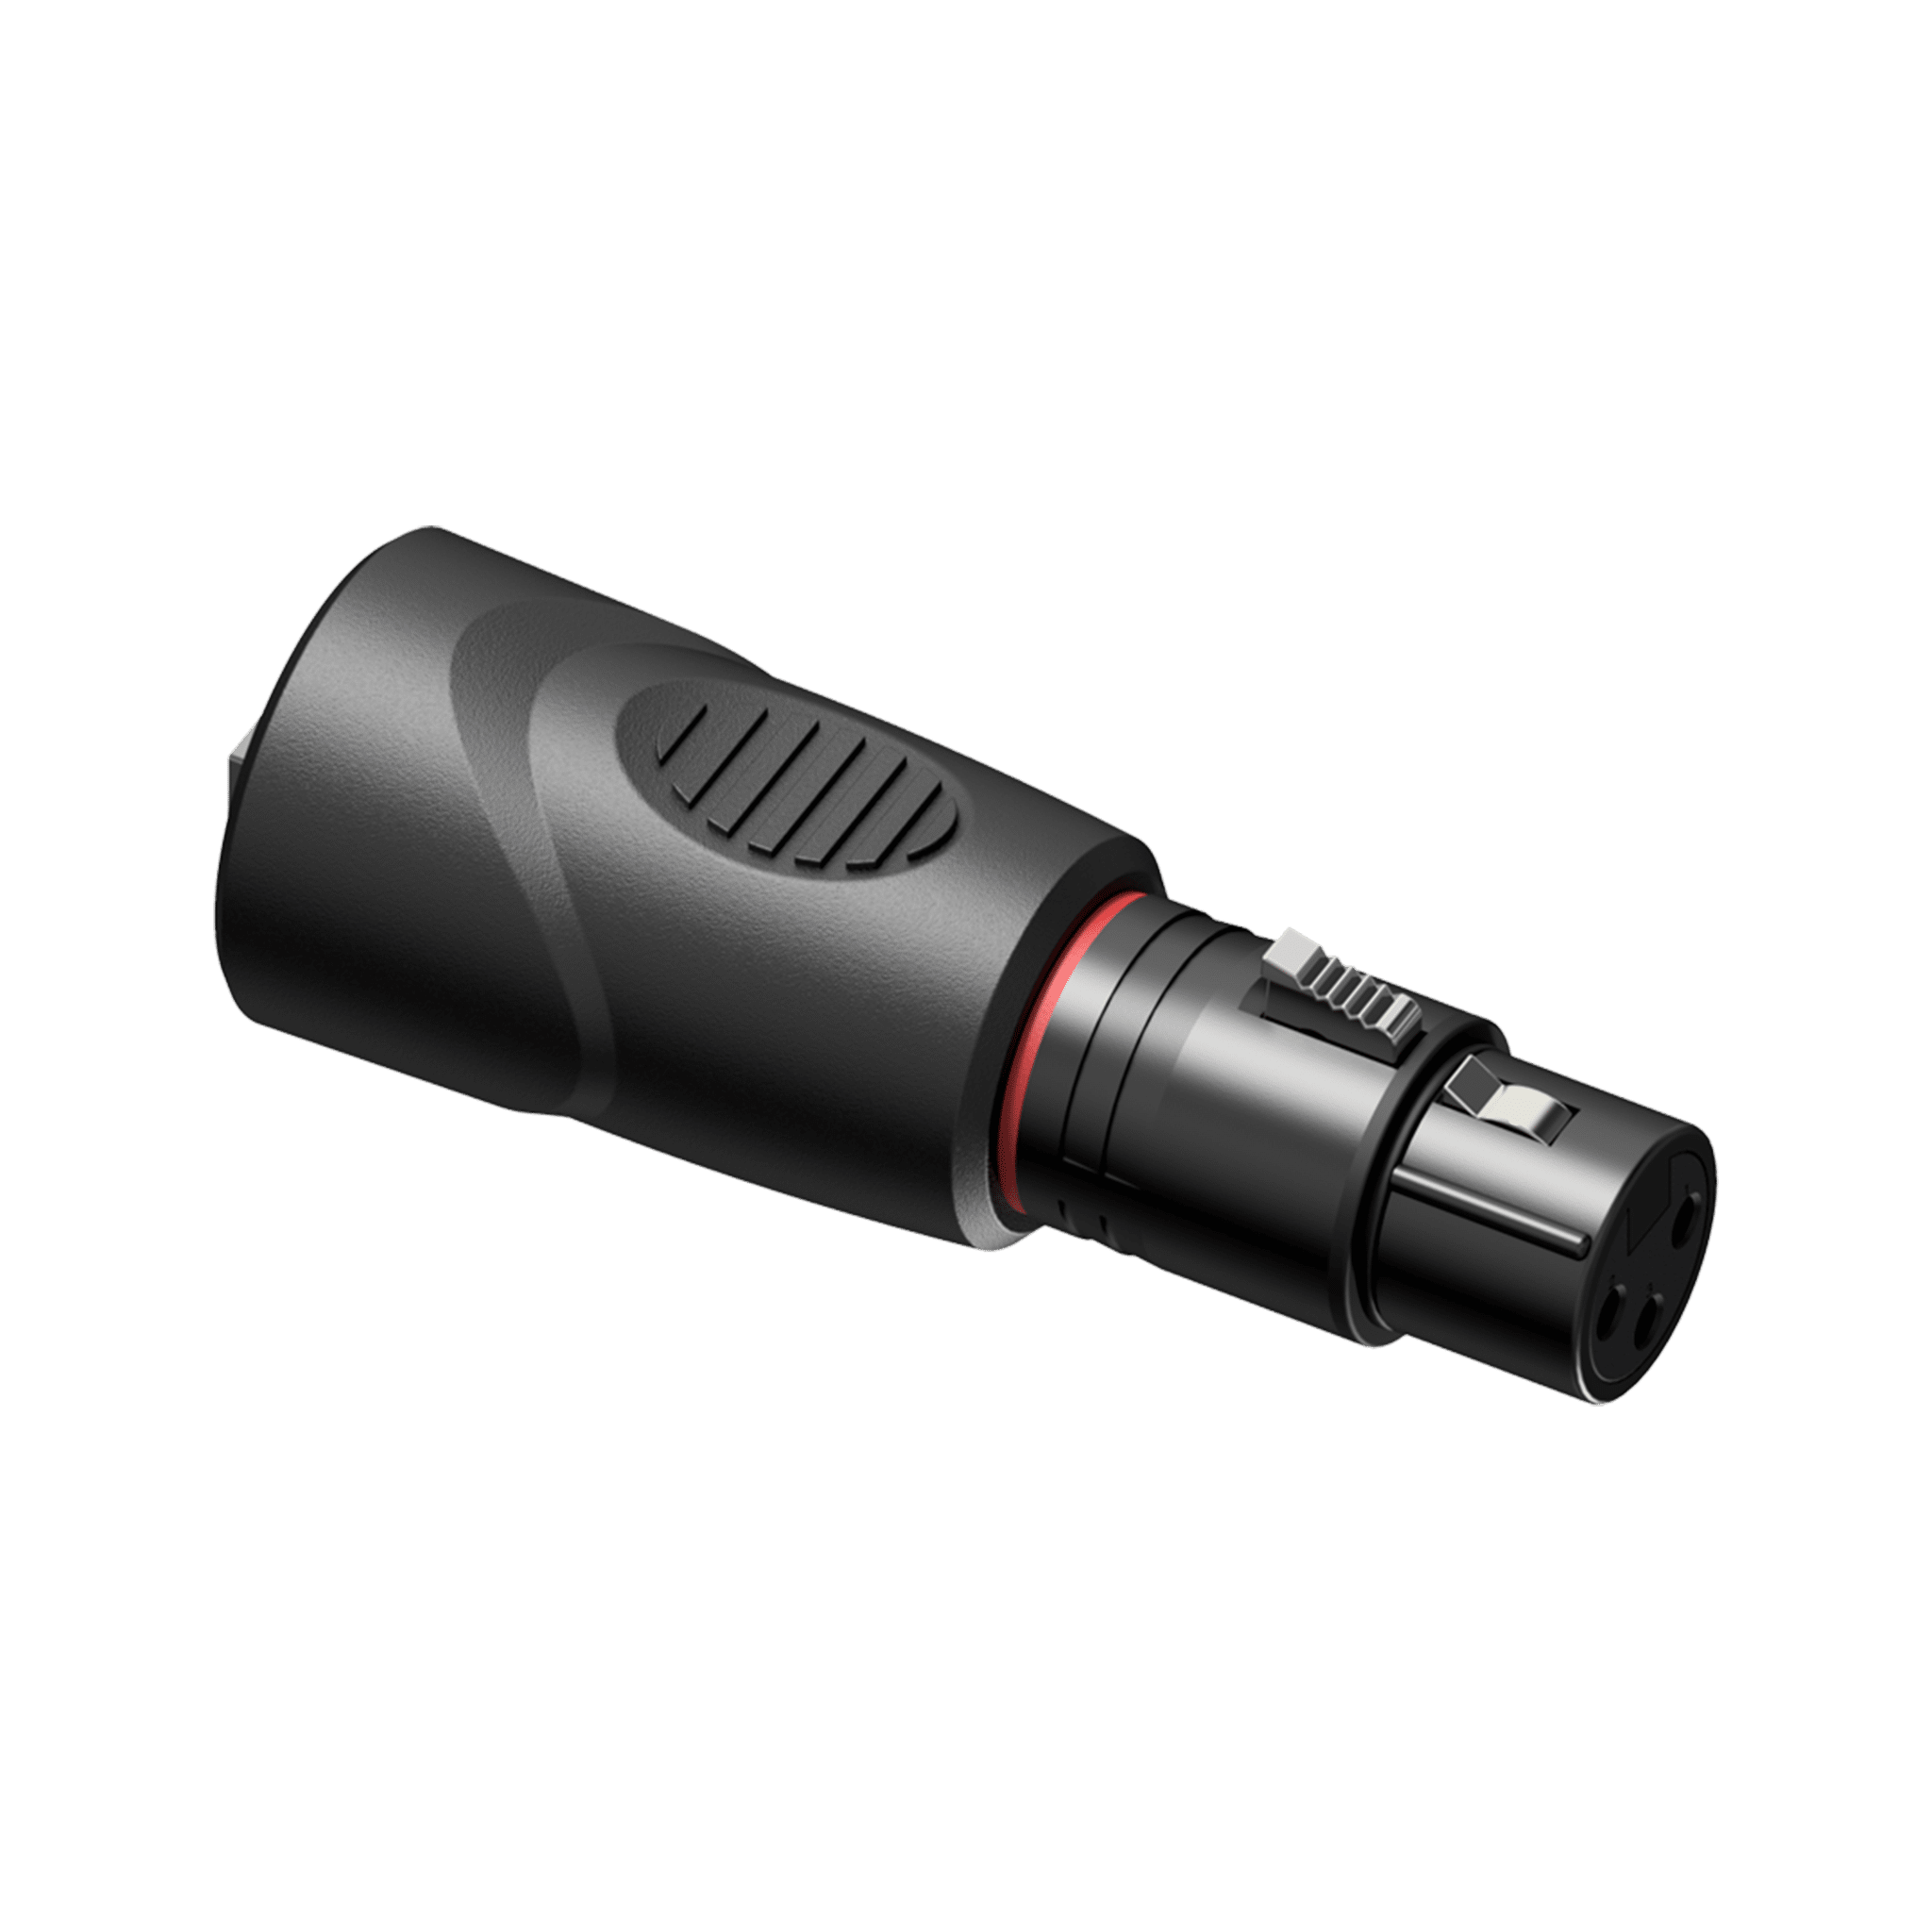 BSP803F - Adapter - 3-pin XLR female to RJ45